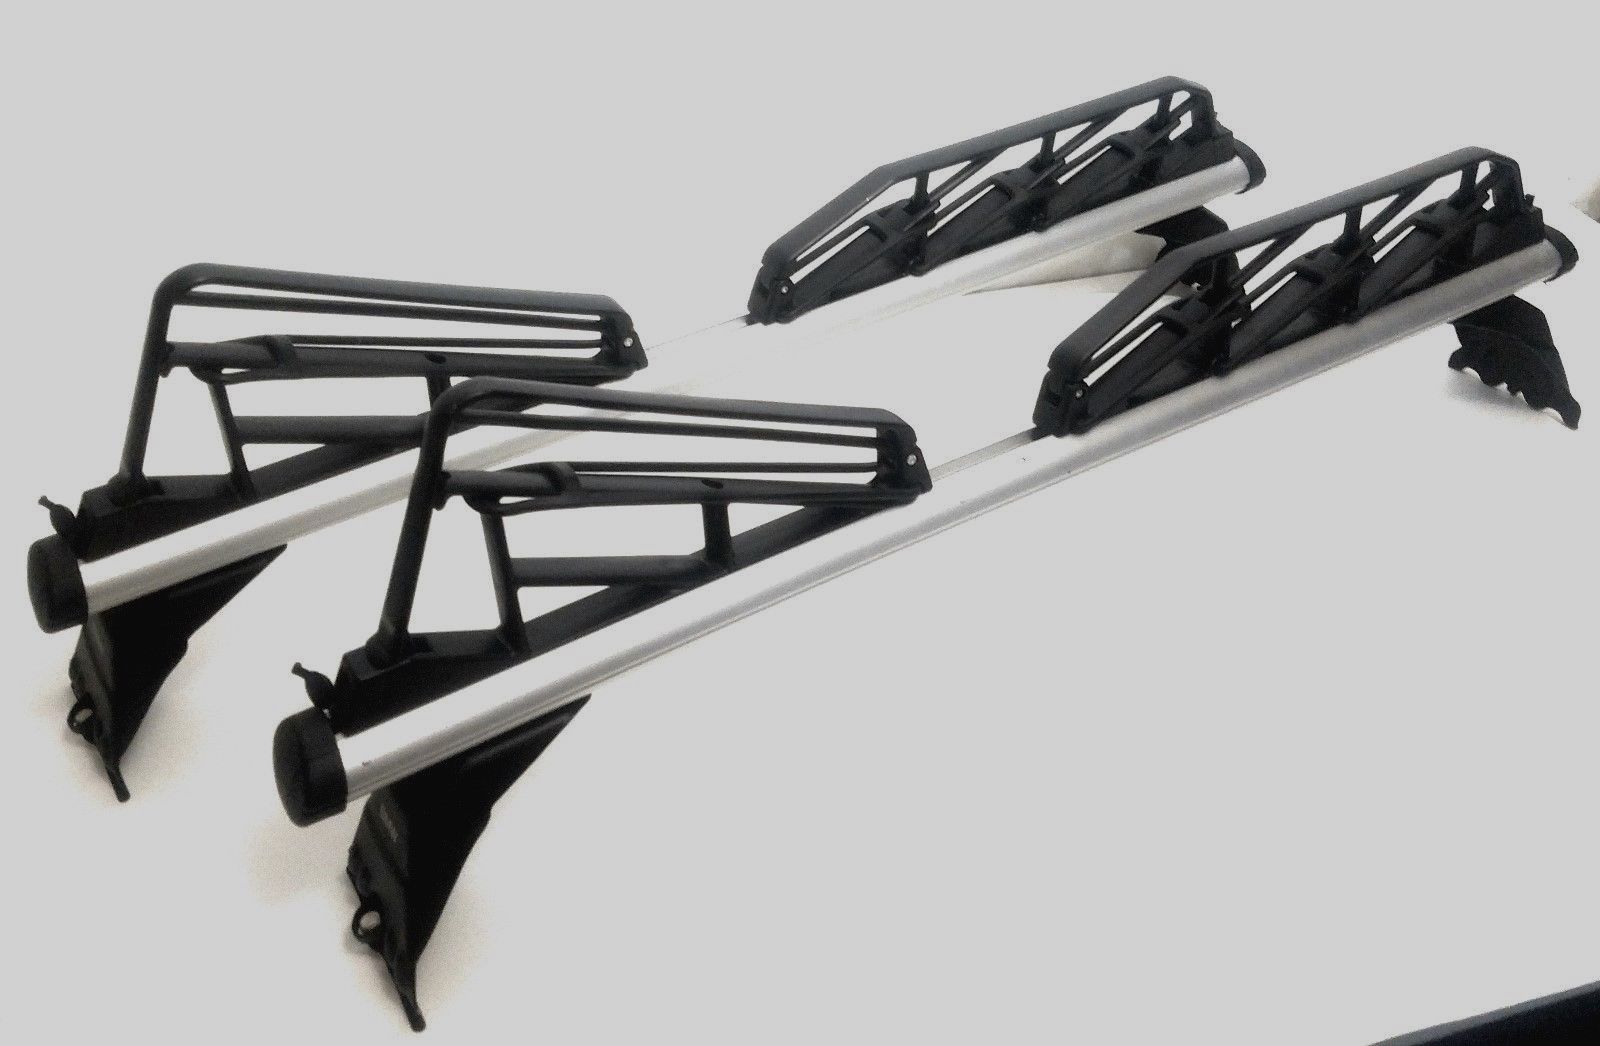 Bmw E39 E46 Oem Support System Roof Rack 82710142220 W Ski Snowboard Holders Does